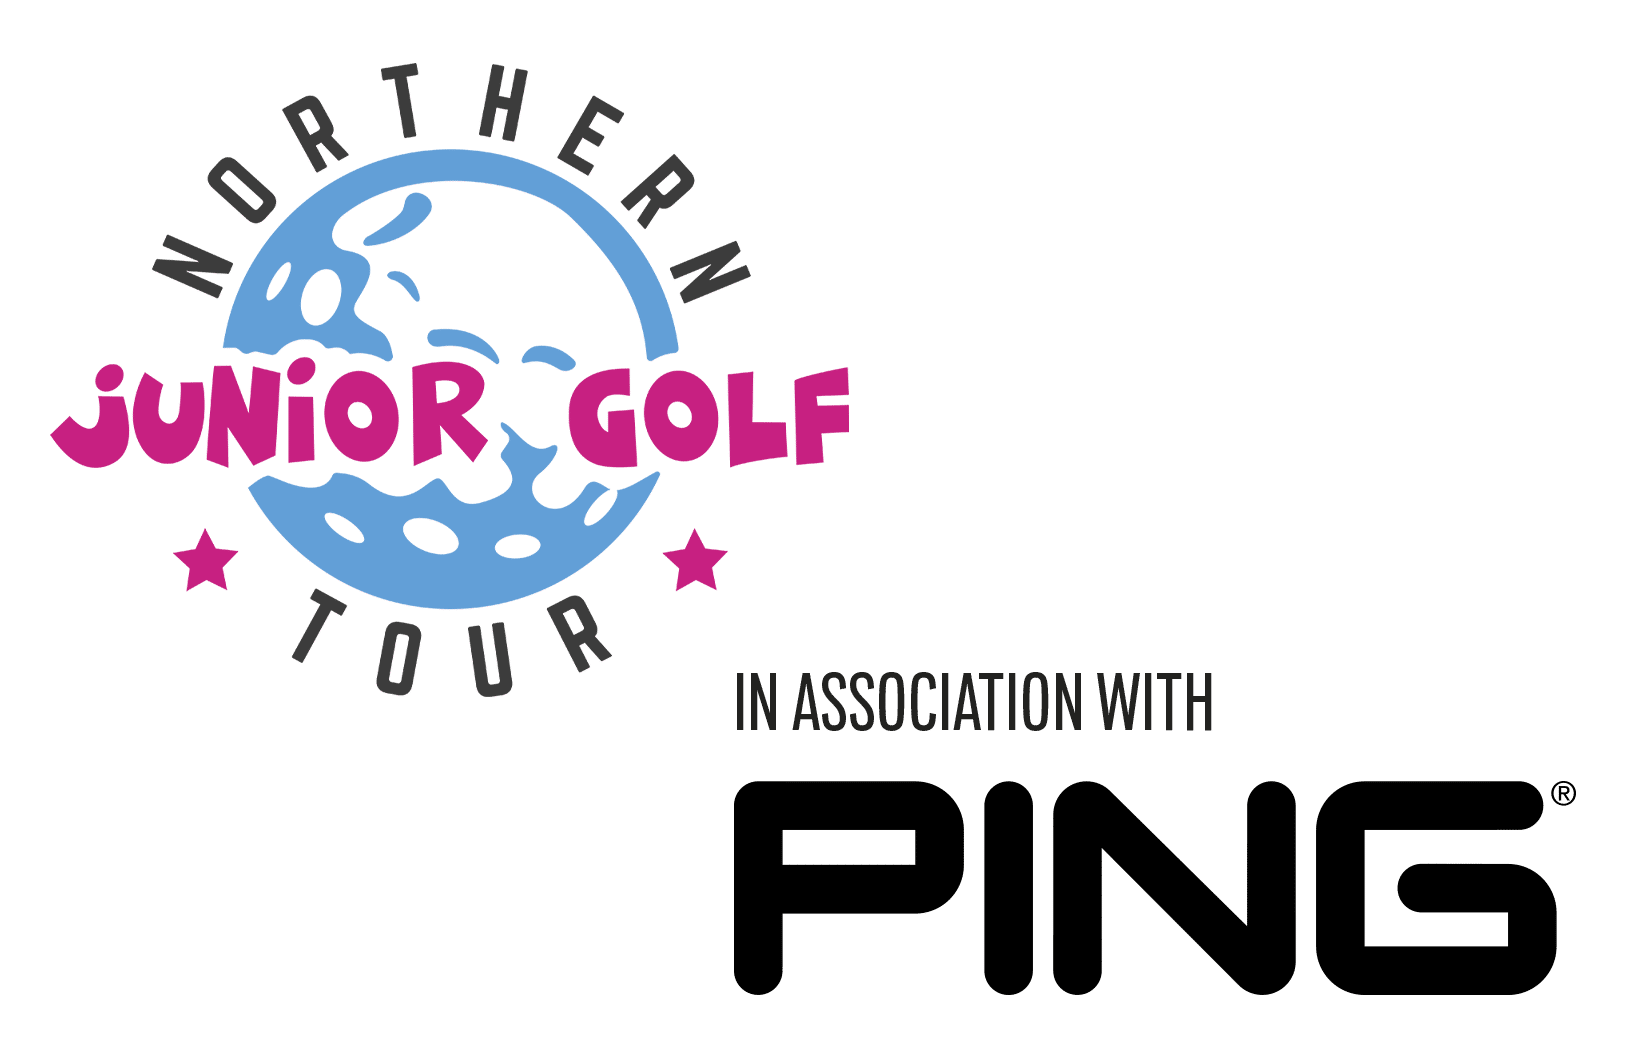 Northern Junior Golf Tour in association with PING®